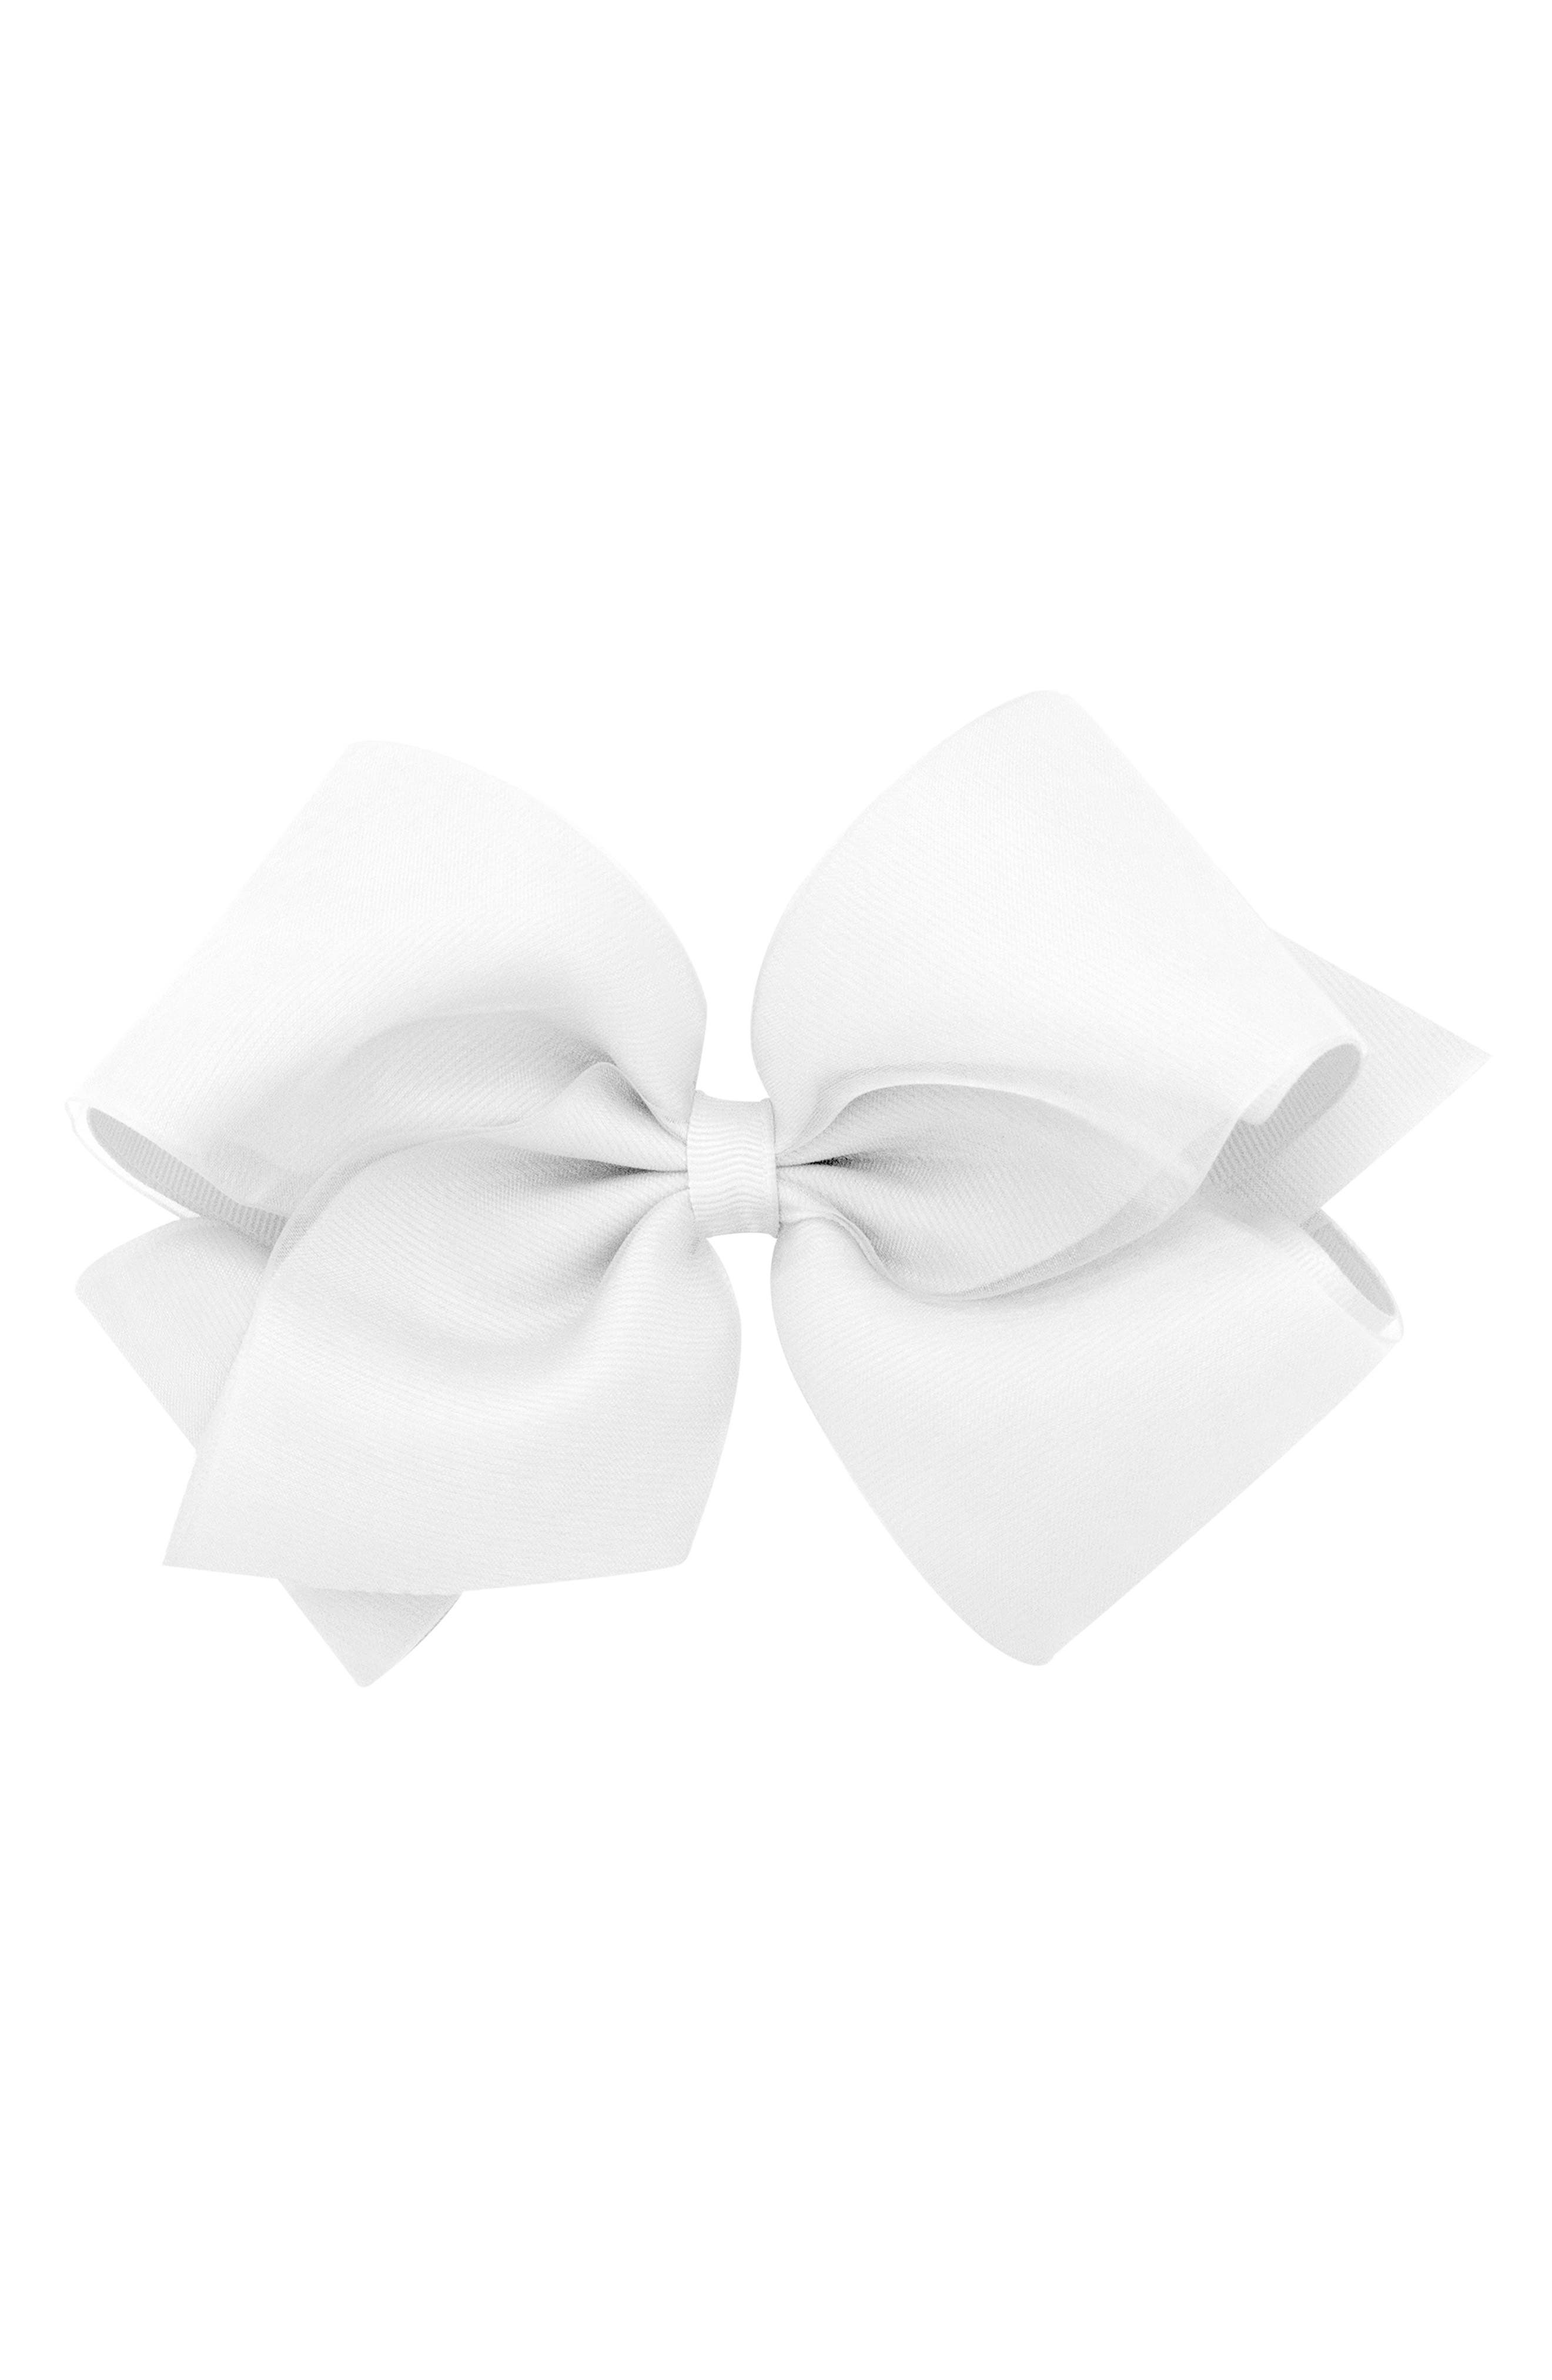 King Organza Overlay Bow Hair Clip,                             Alternate thumbnail 2, color,                             WHITE